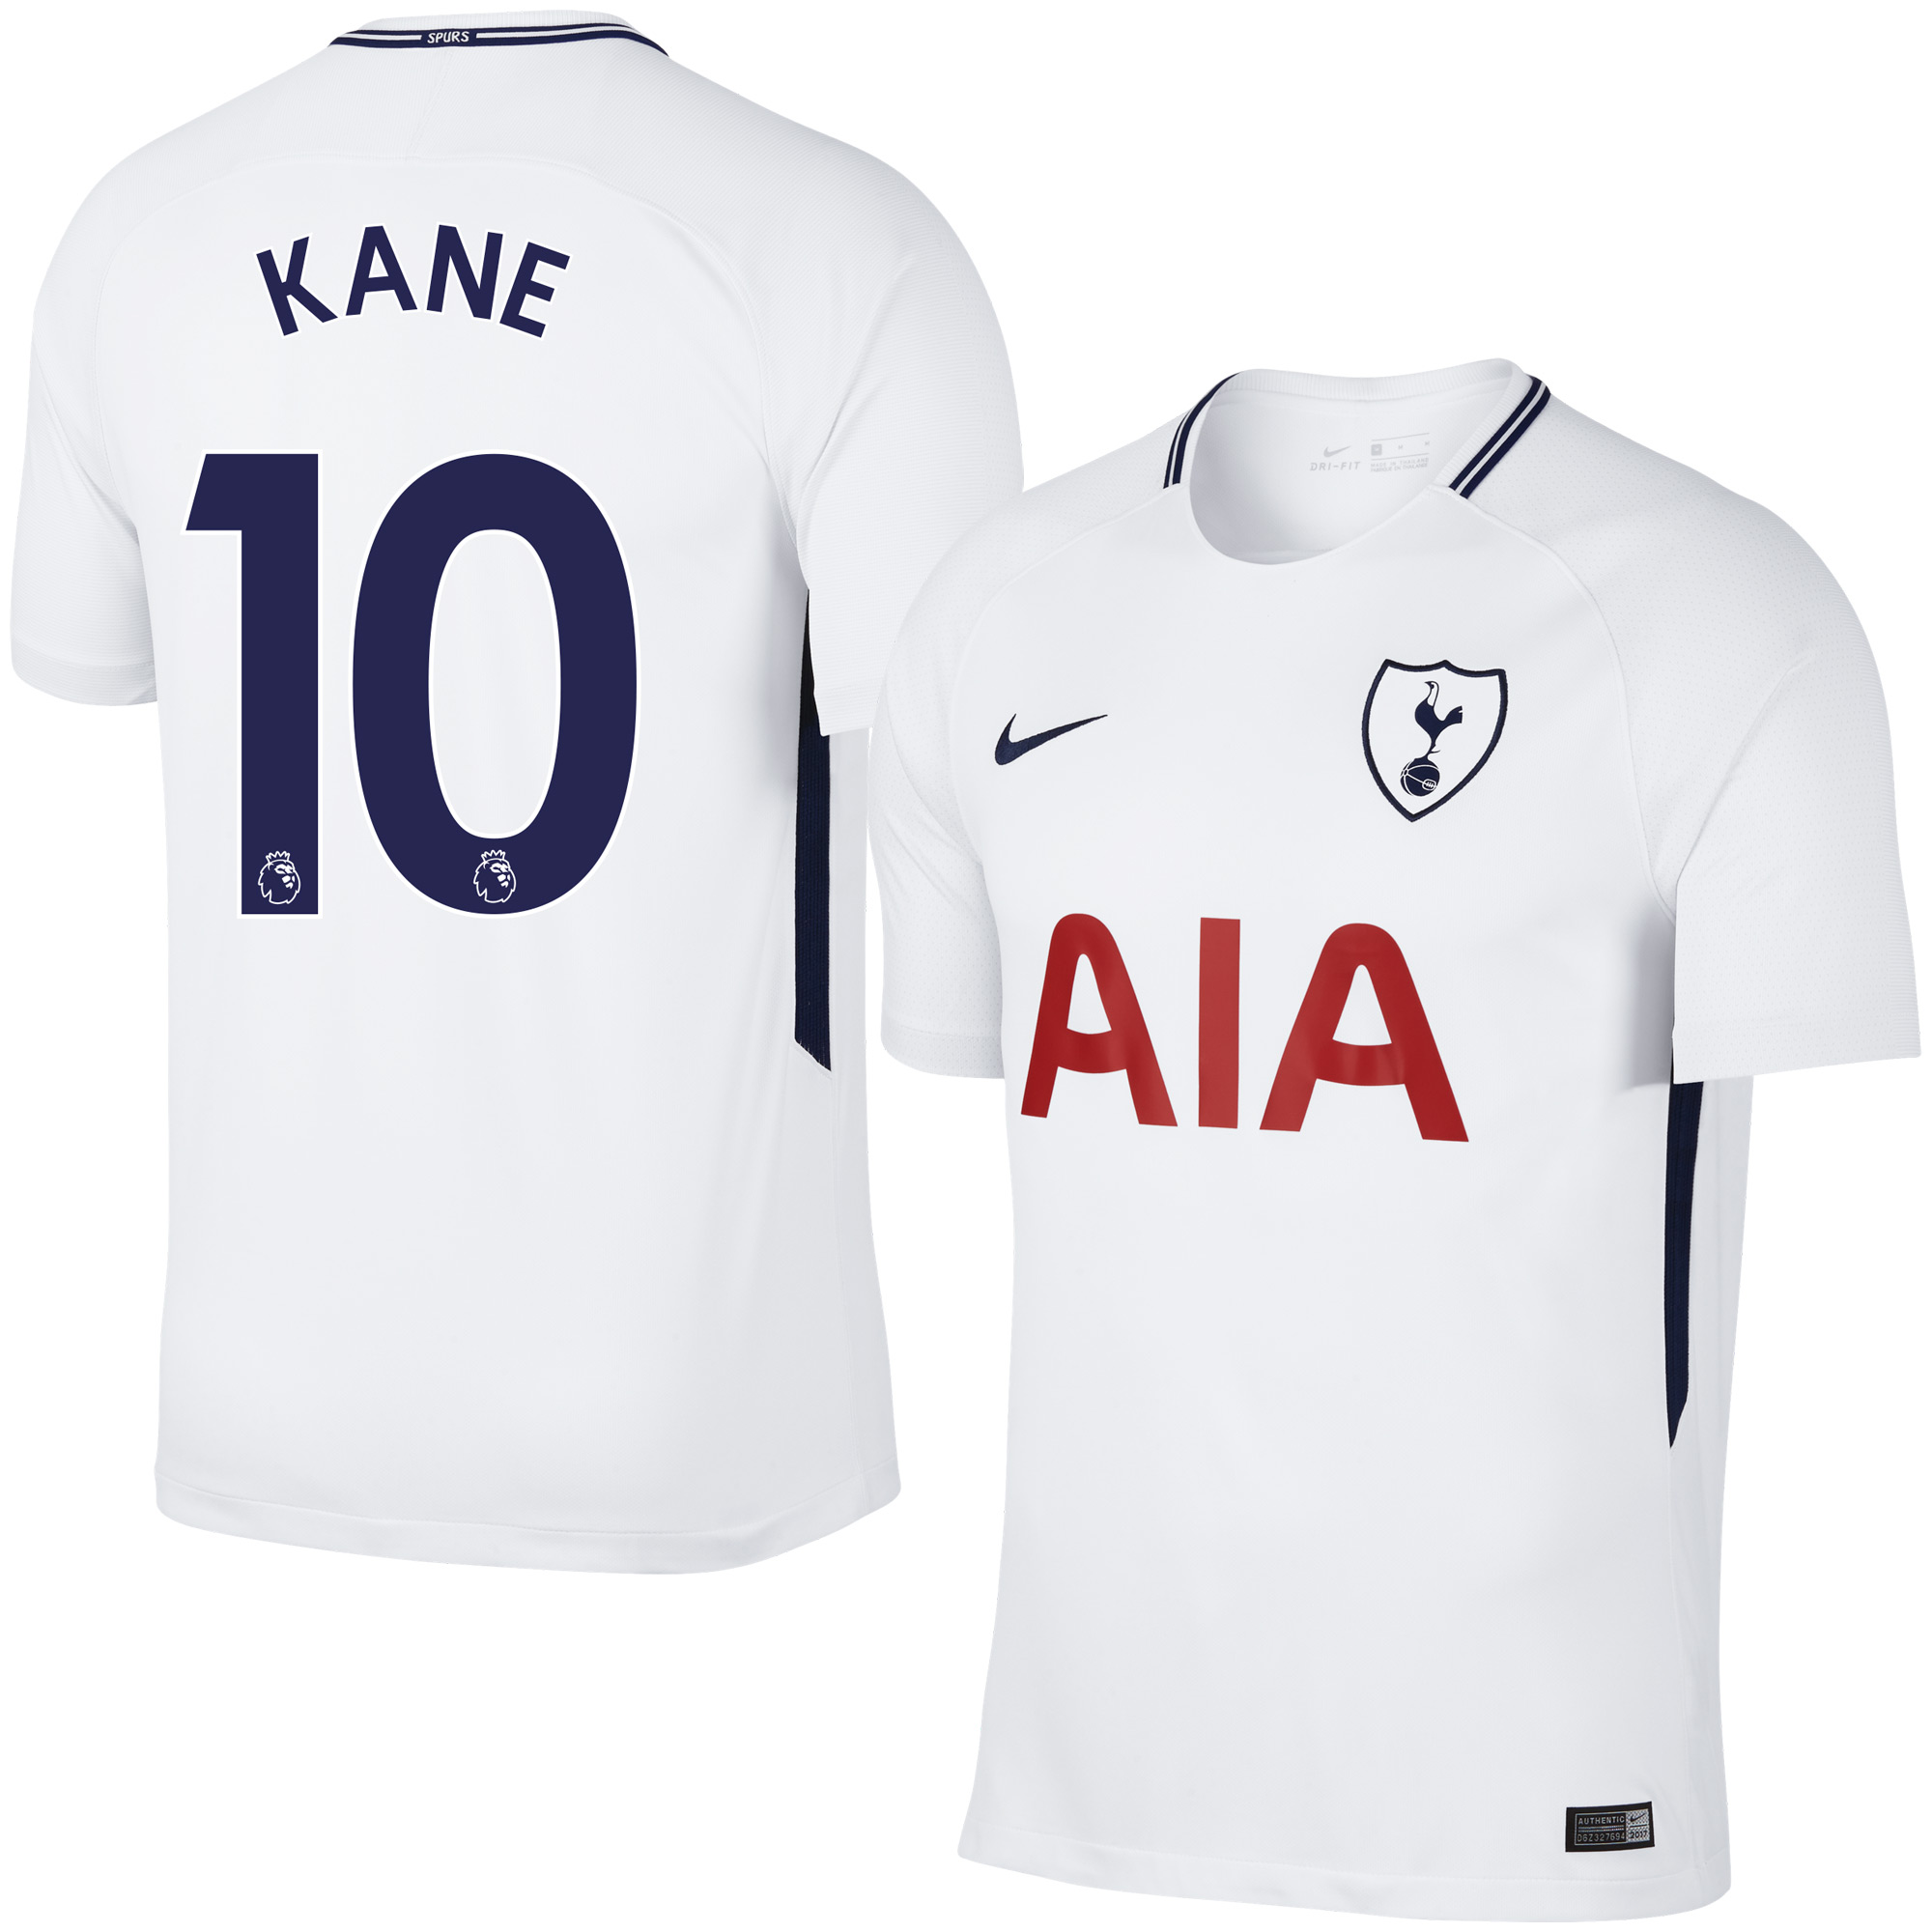 Tottenham Home Kane Jersey 2017 / 2018 (Authentic EPL Printing) - XXL